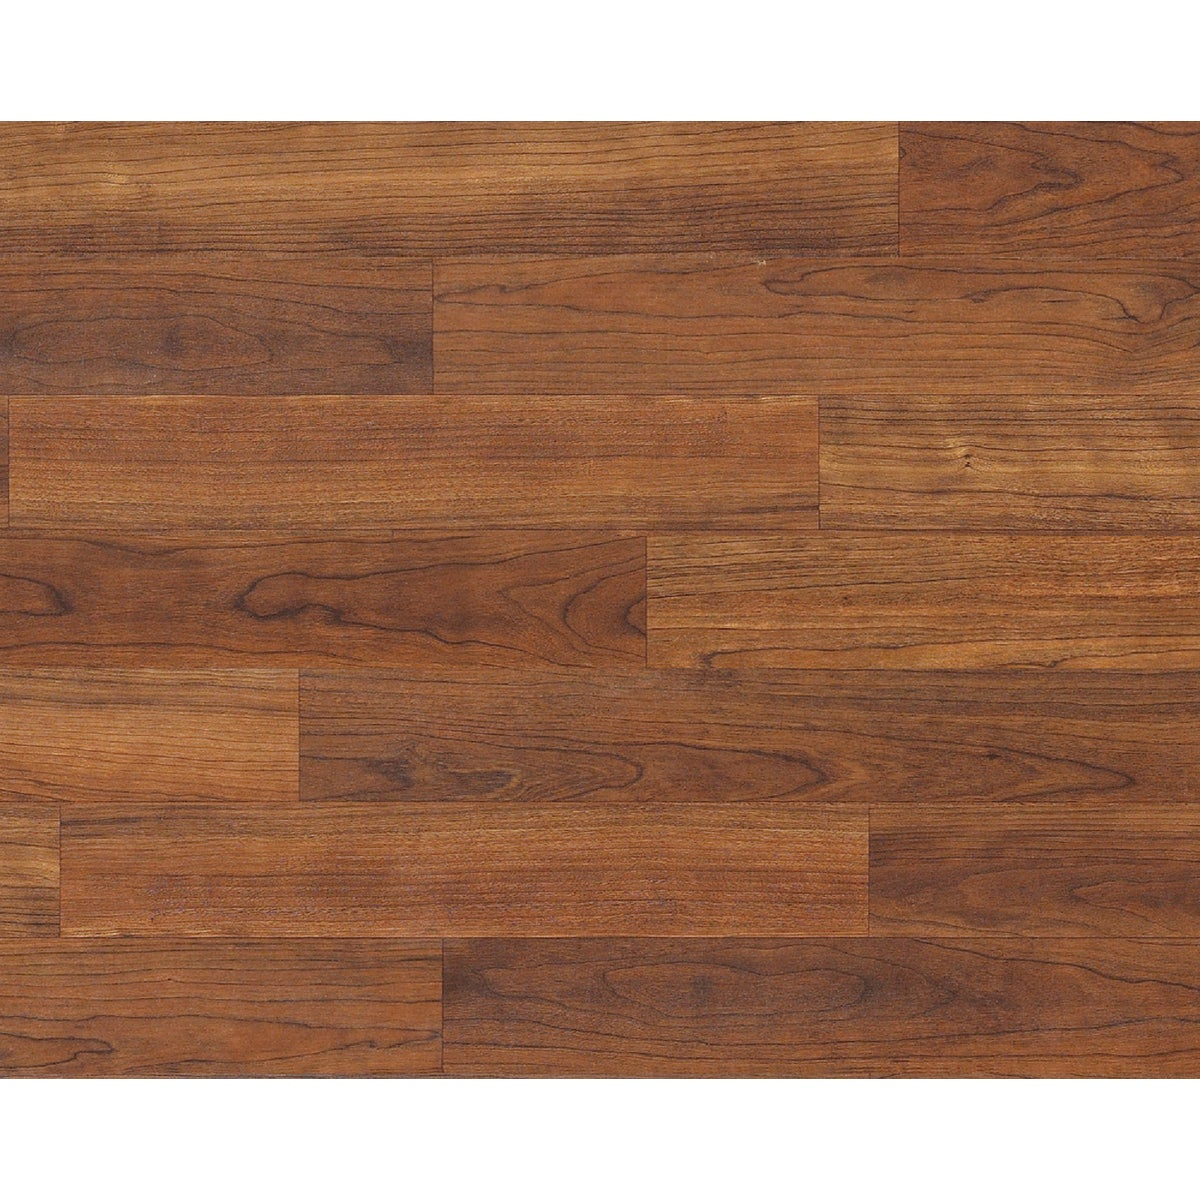 KC CHERRY LAMINATE FLOOR